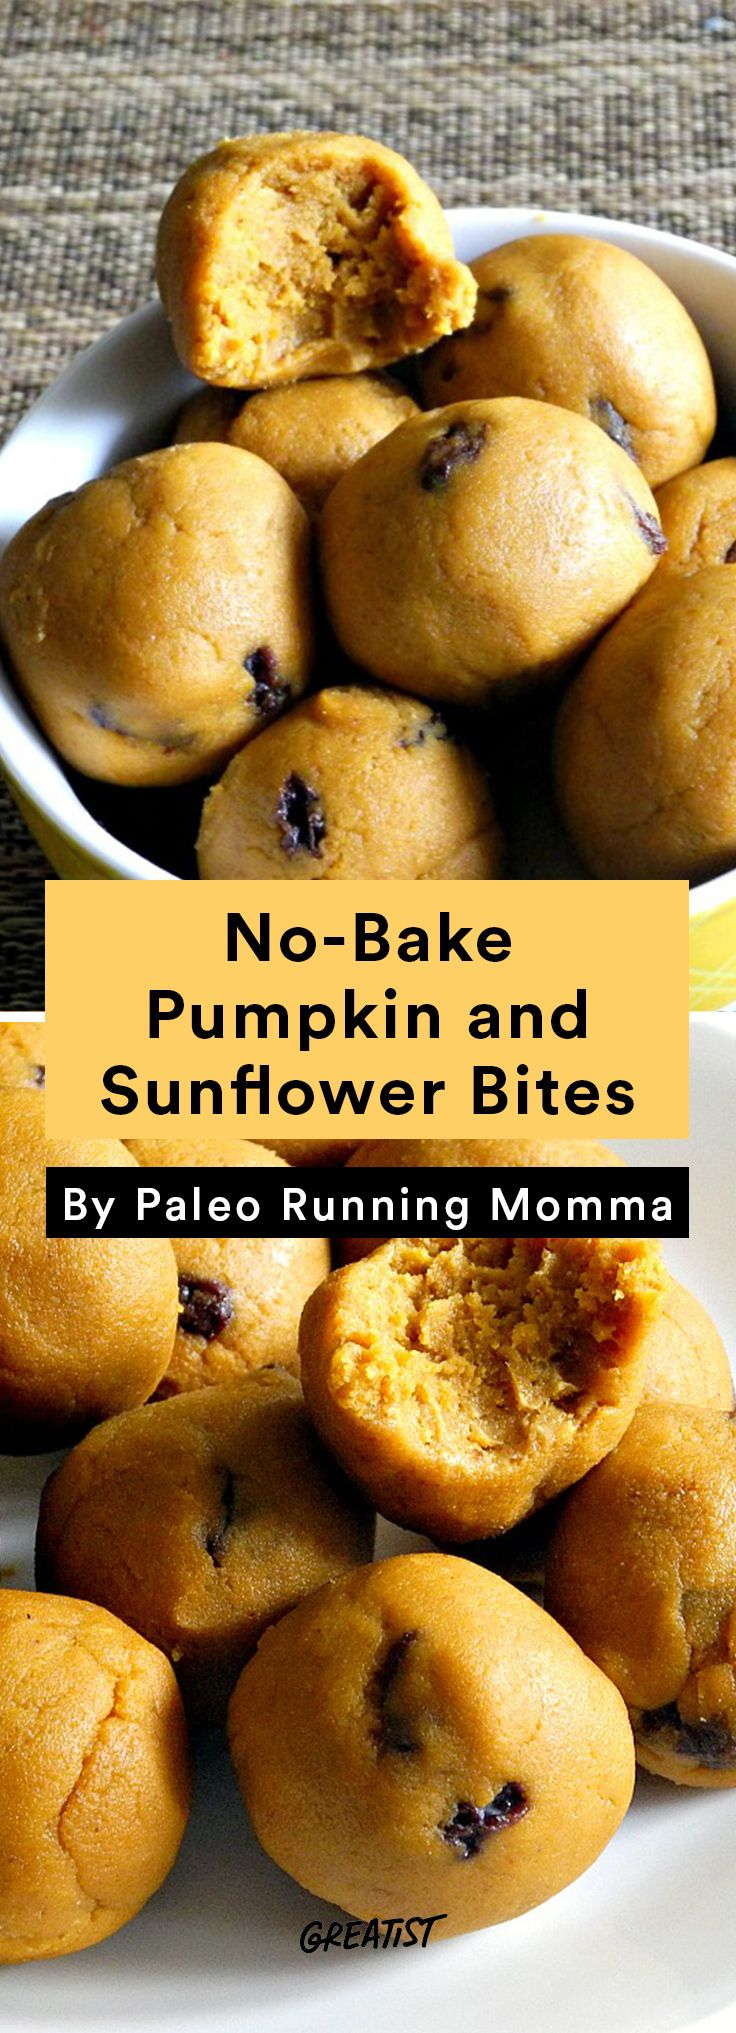 10. No-Bake Pumpkin and Sunflower Bites #healthy #travel #snacks http://greatist.com/eat/healthy-snack-recipes-to-take-on-vacation